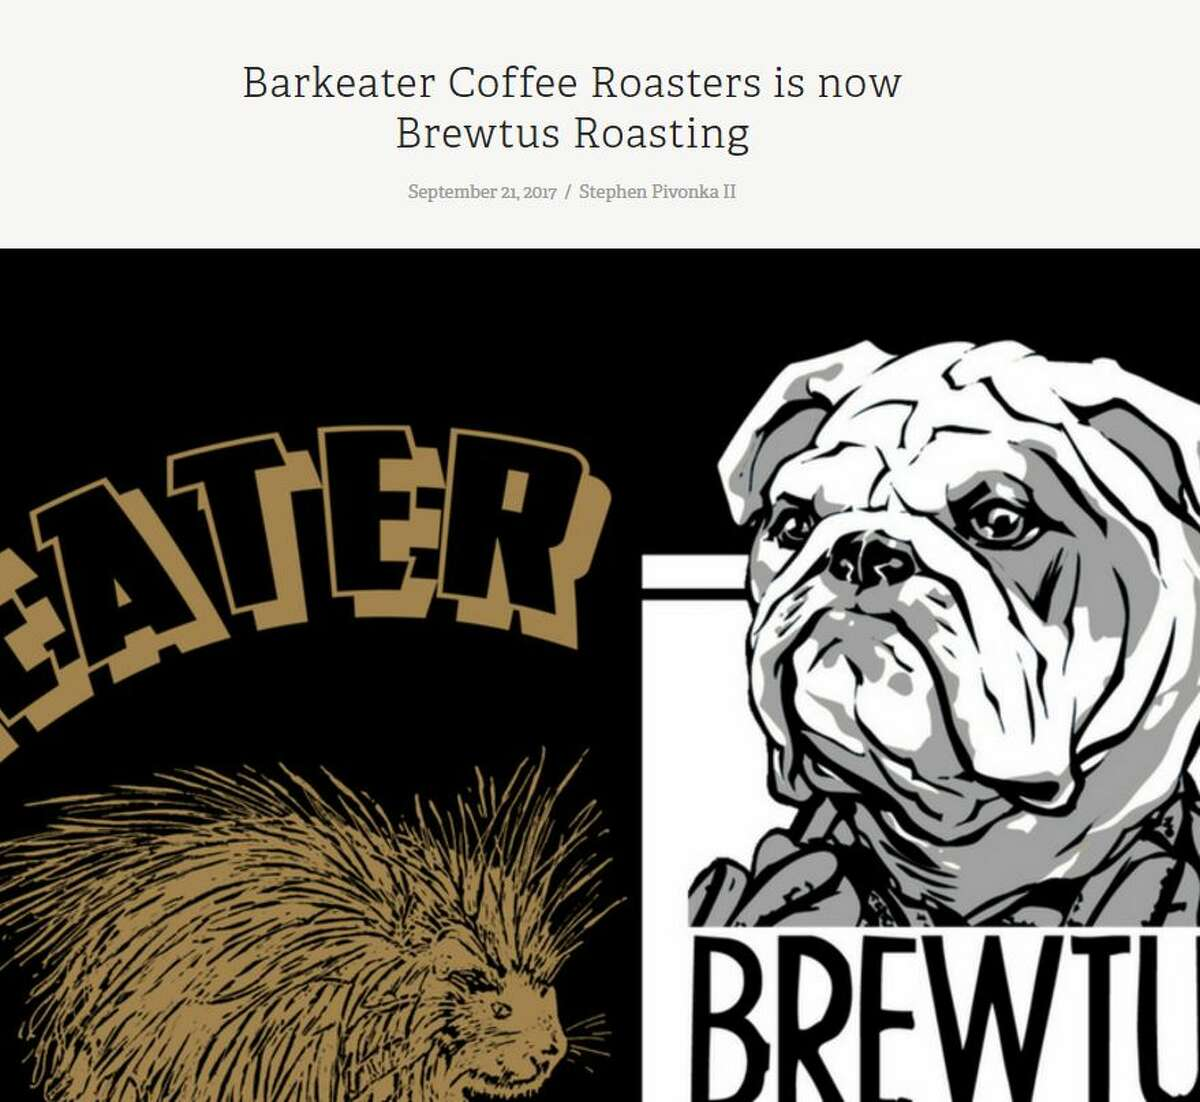 Barkeater Coffee Roasters is changing its name to Brewtus Roasting and is moving to Delmar